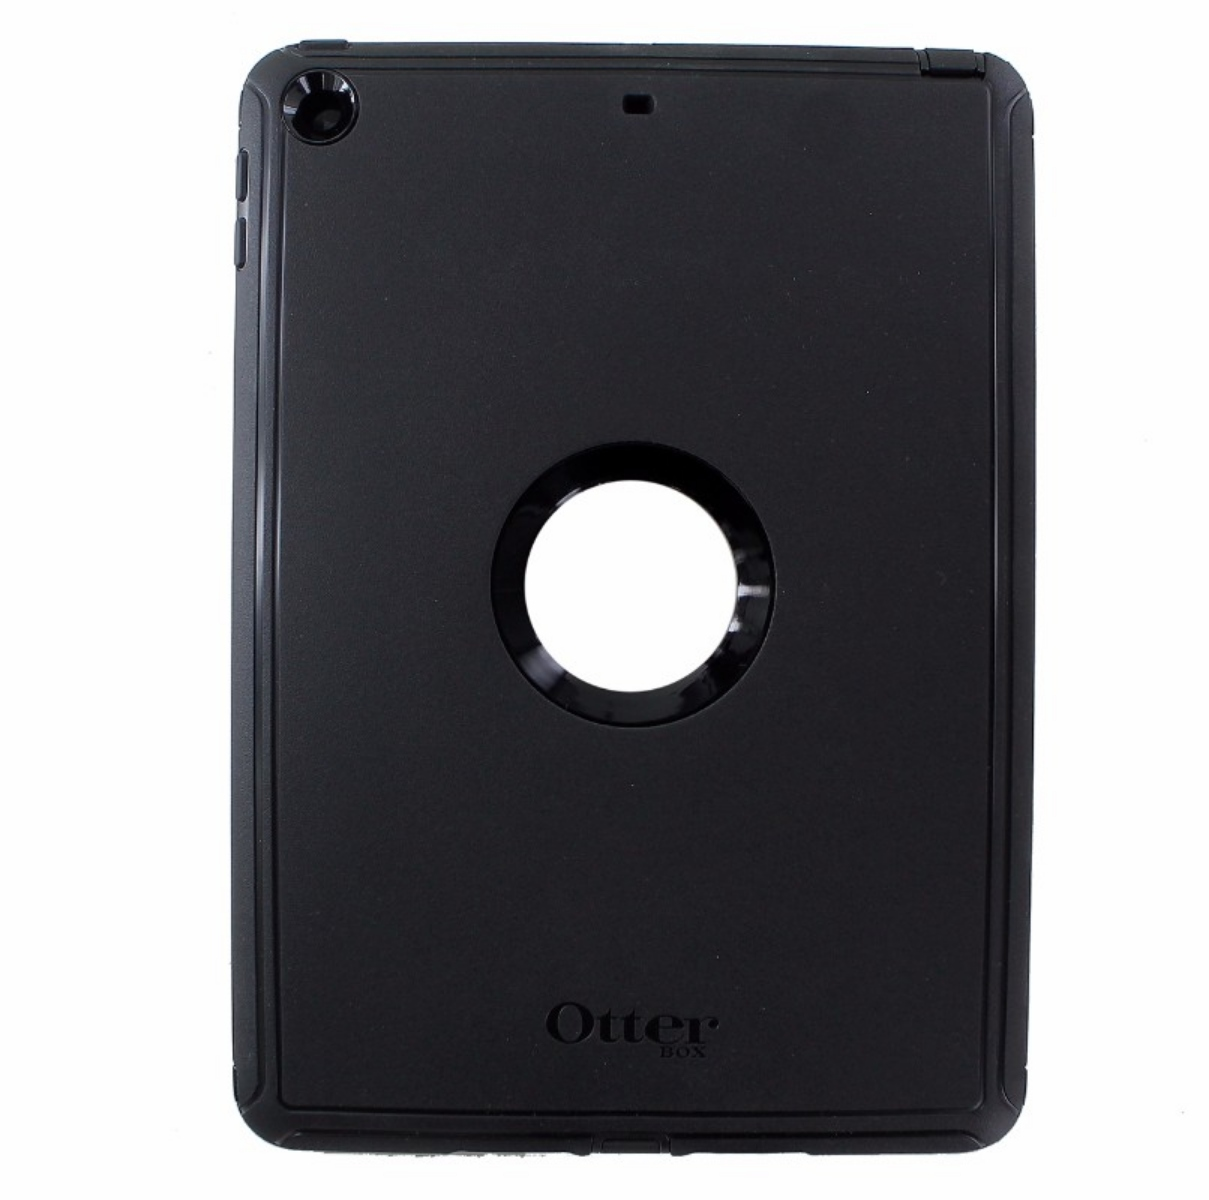 OtterBox Defender Series Protective Case for Apple iPad 5th Gen - Black